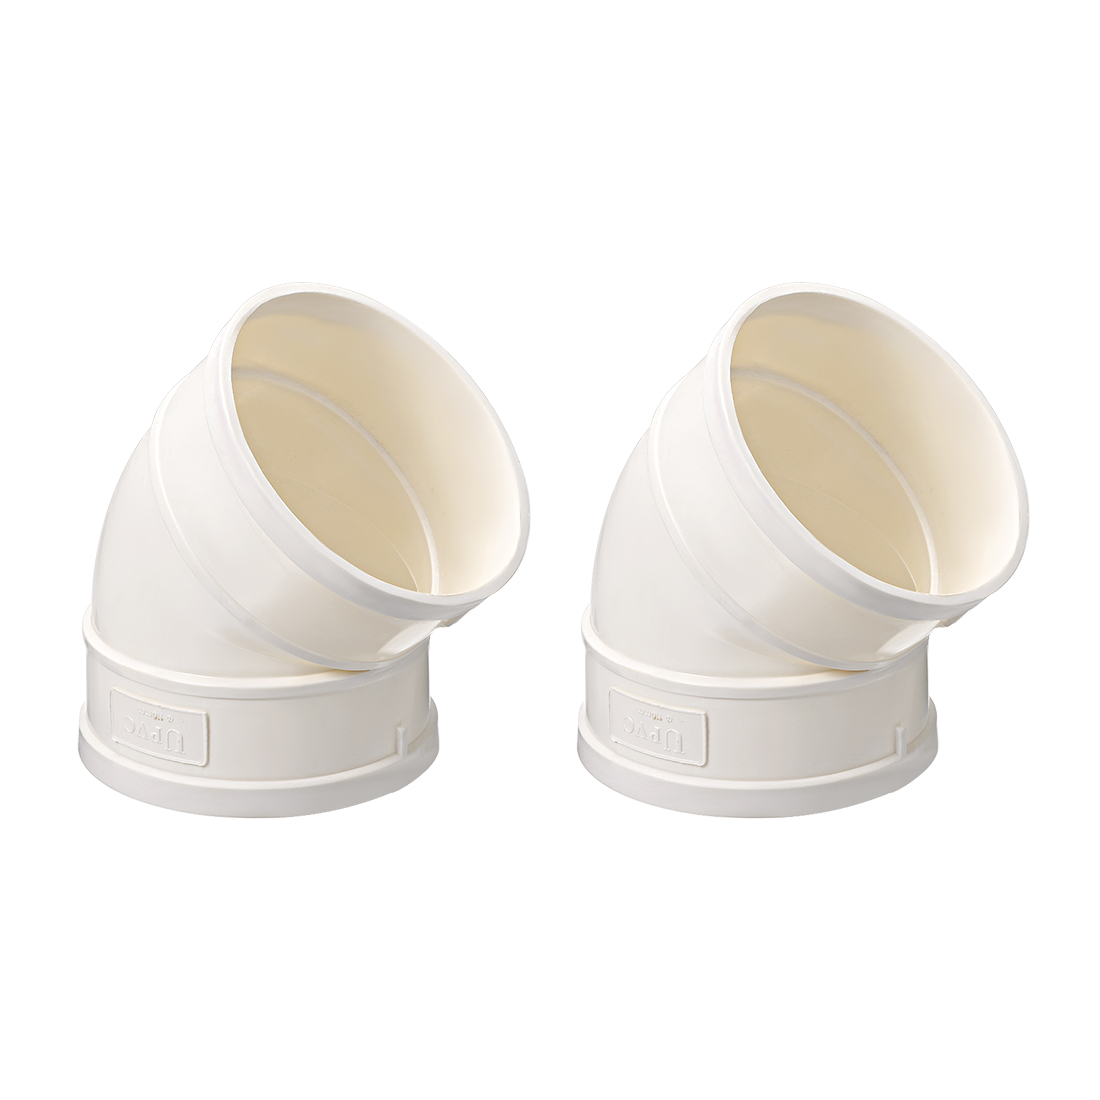 PVC Pipe Fitting 45 Degree Elbow Schedule 40 White 4-Inch Socket 2pcs